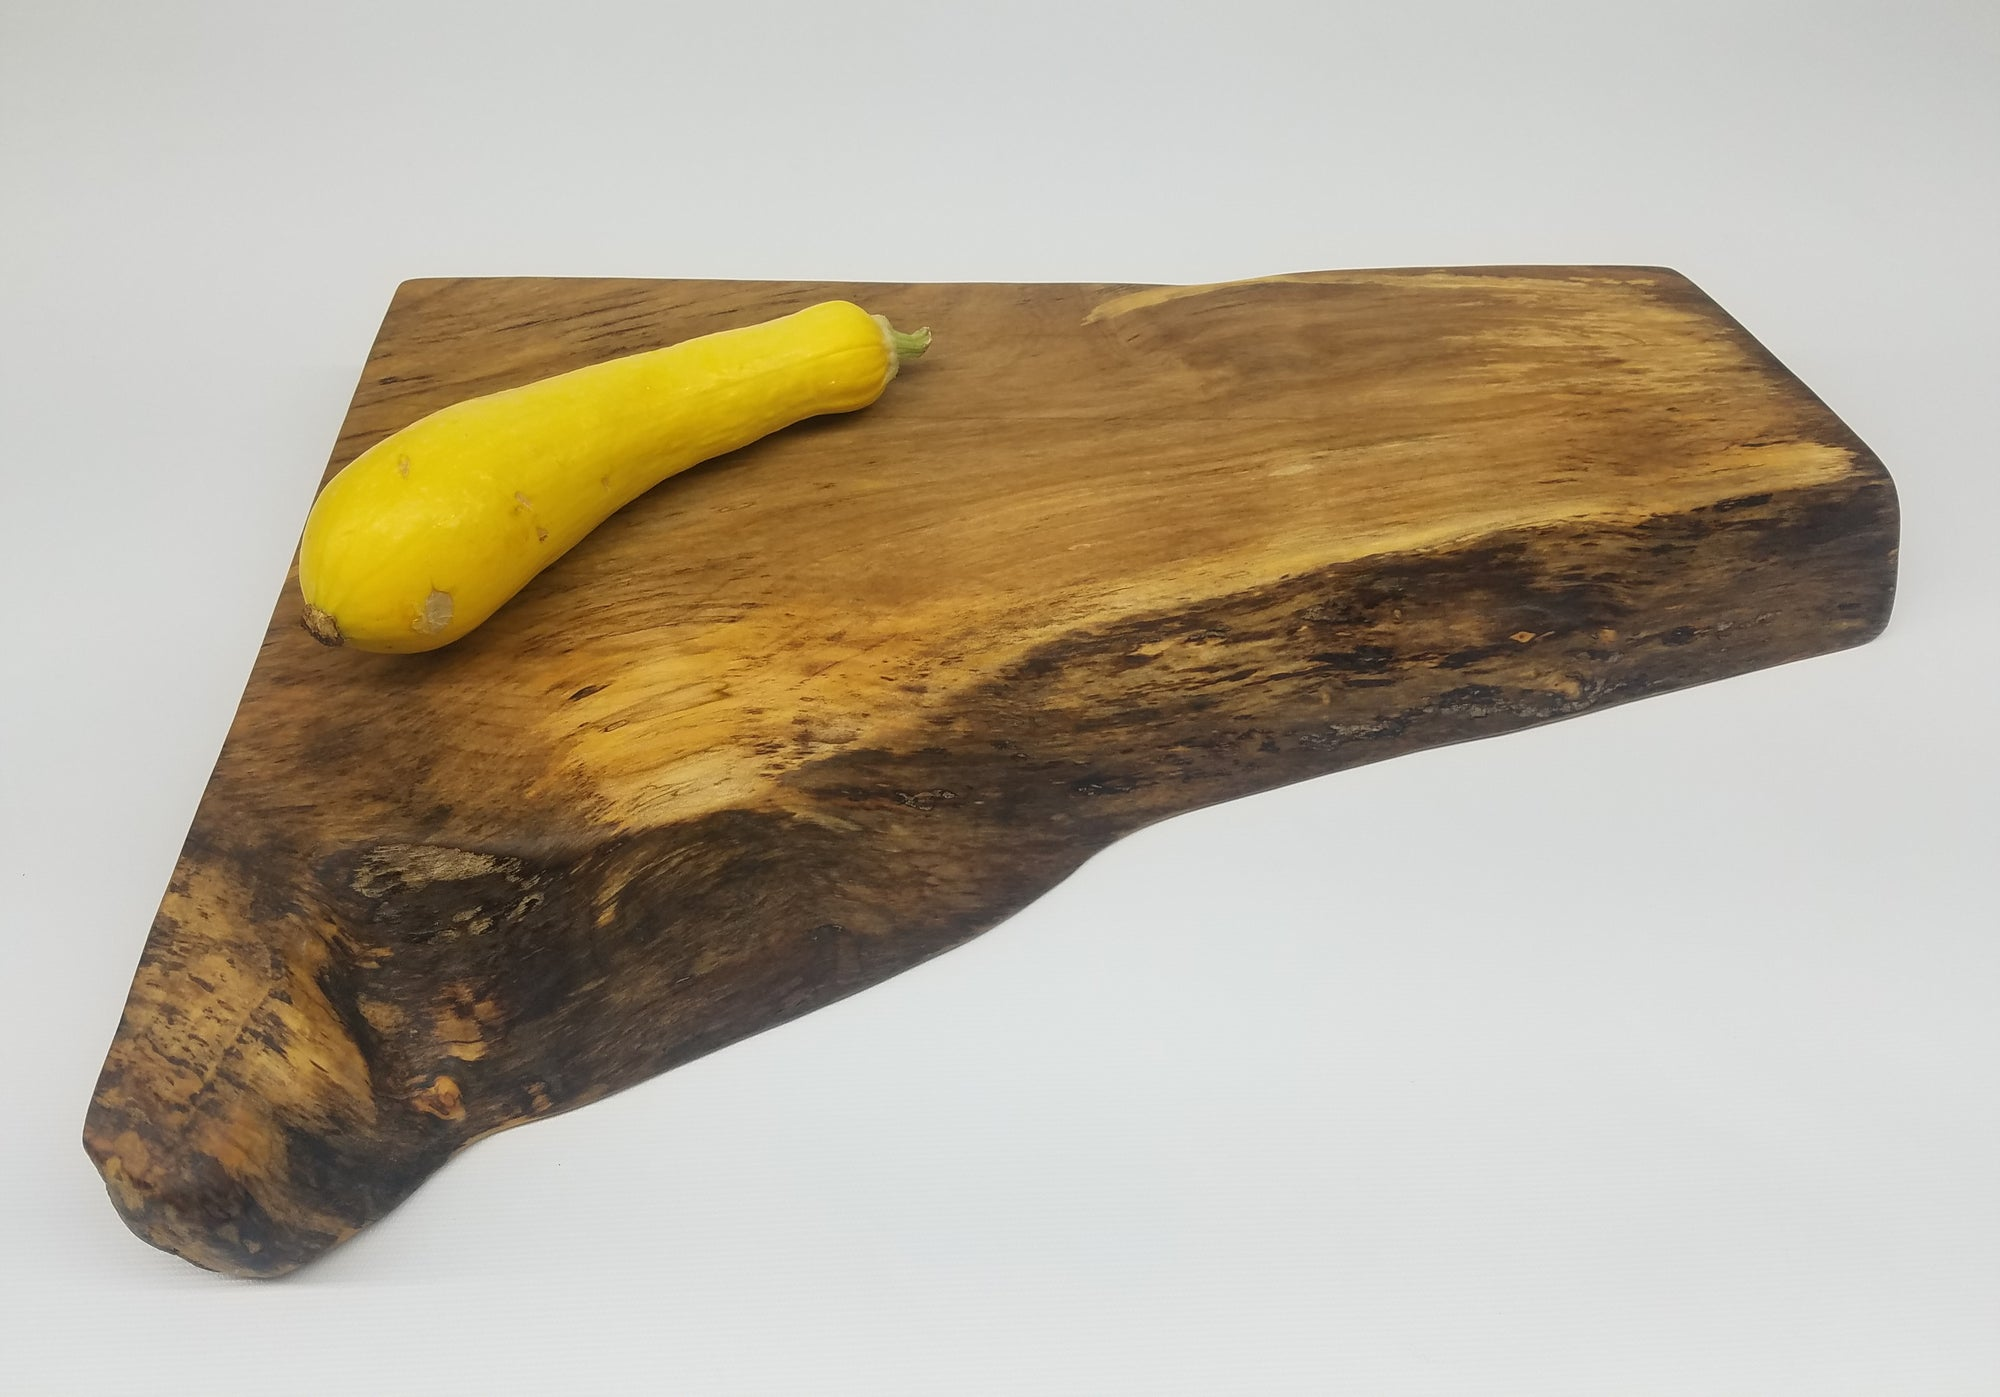 Serving Board- Live Edge Charcuterie Board- Dining- Cheese Board- Cutting Board- Natural Wood Server- Platter- Maple- Sushi Plate- Gift